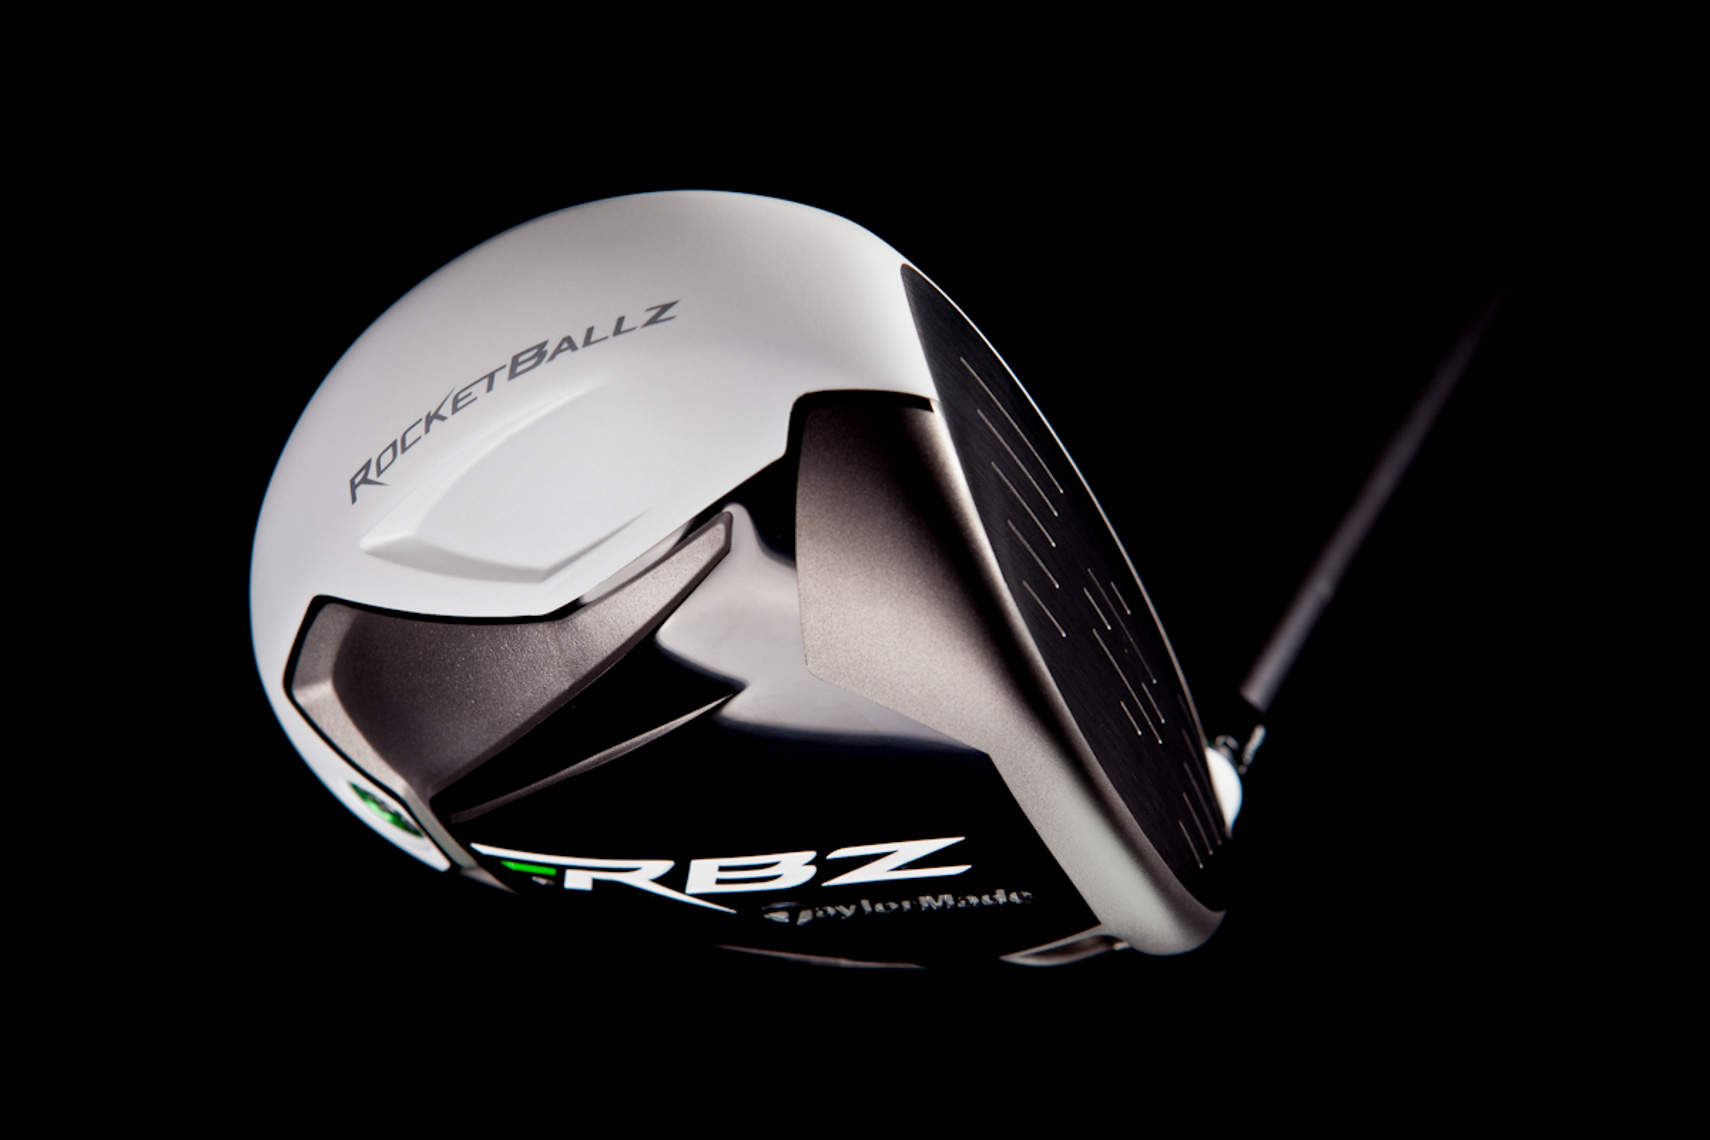 TaylorMade-RocketBallz-San-Francisco-Oakland-Product-Photographer-0001